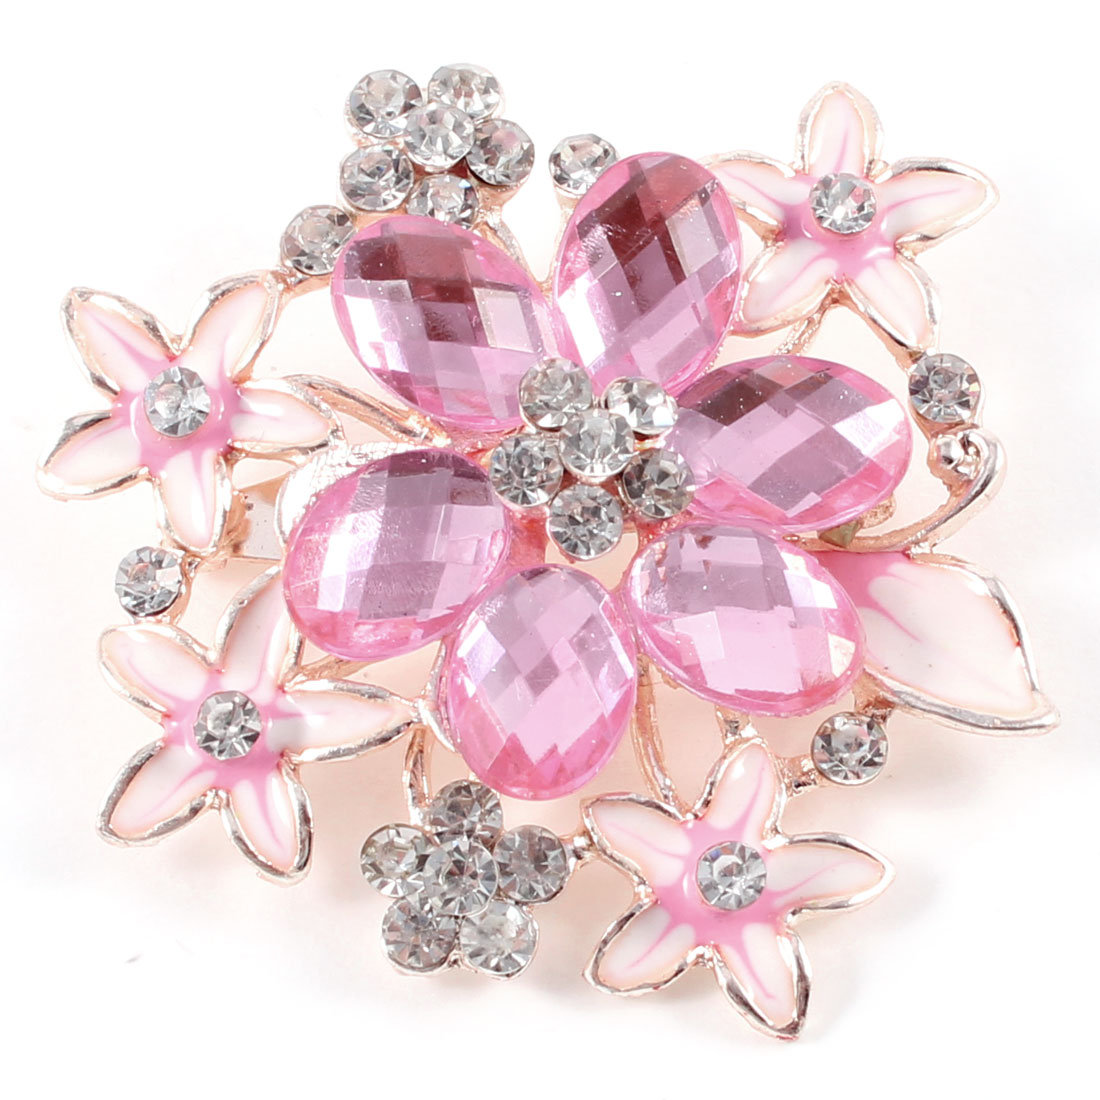 Plastic Crystal Decor Flower Style Brooch Breast Pin Pink Silver Tone for Lady